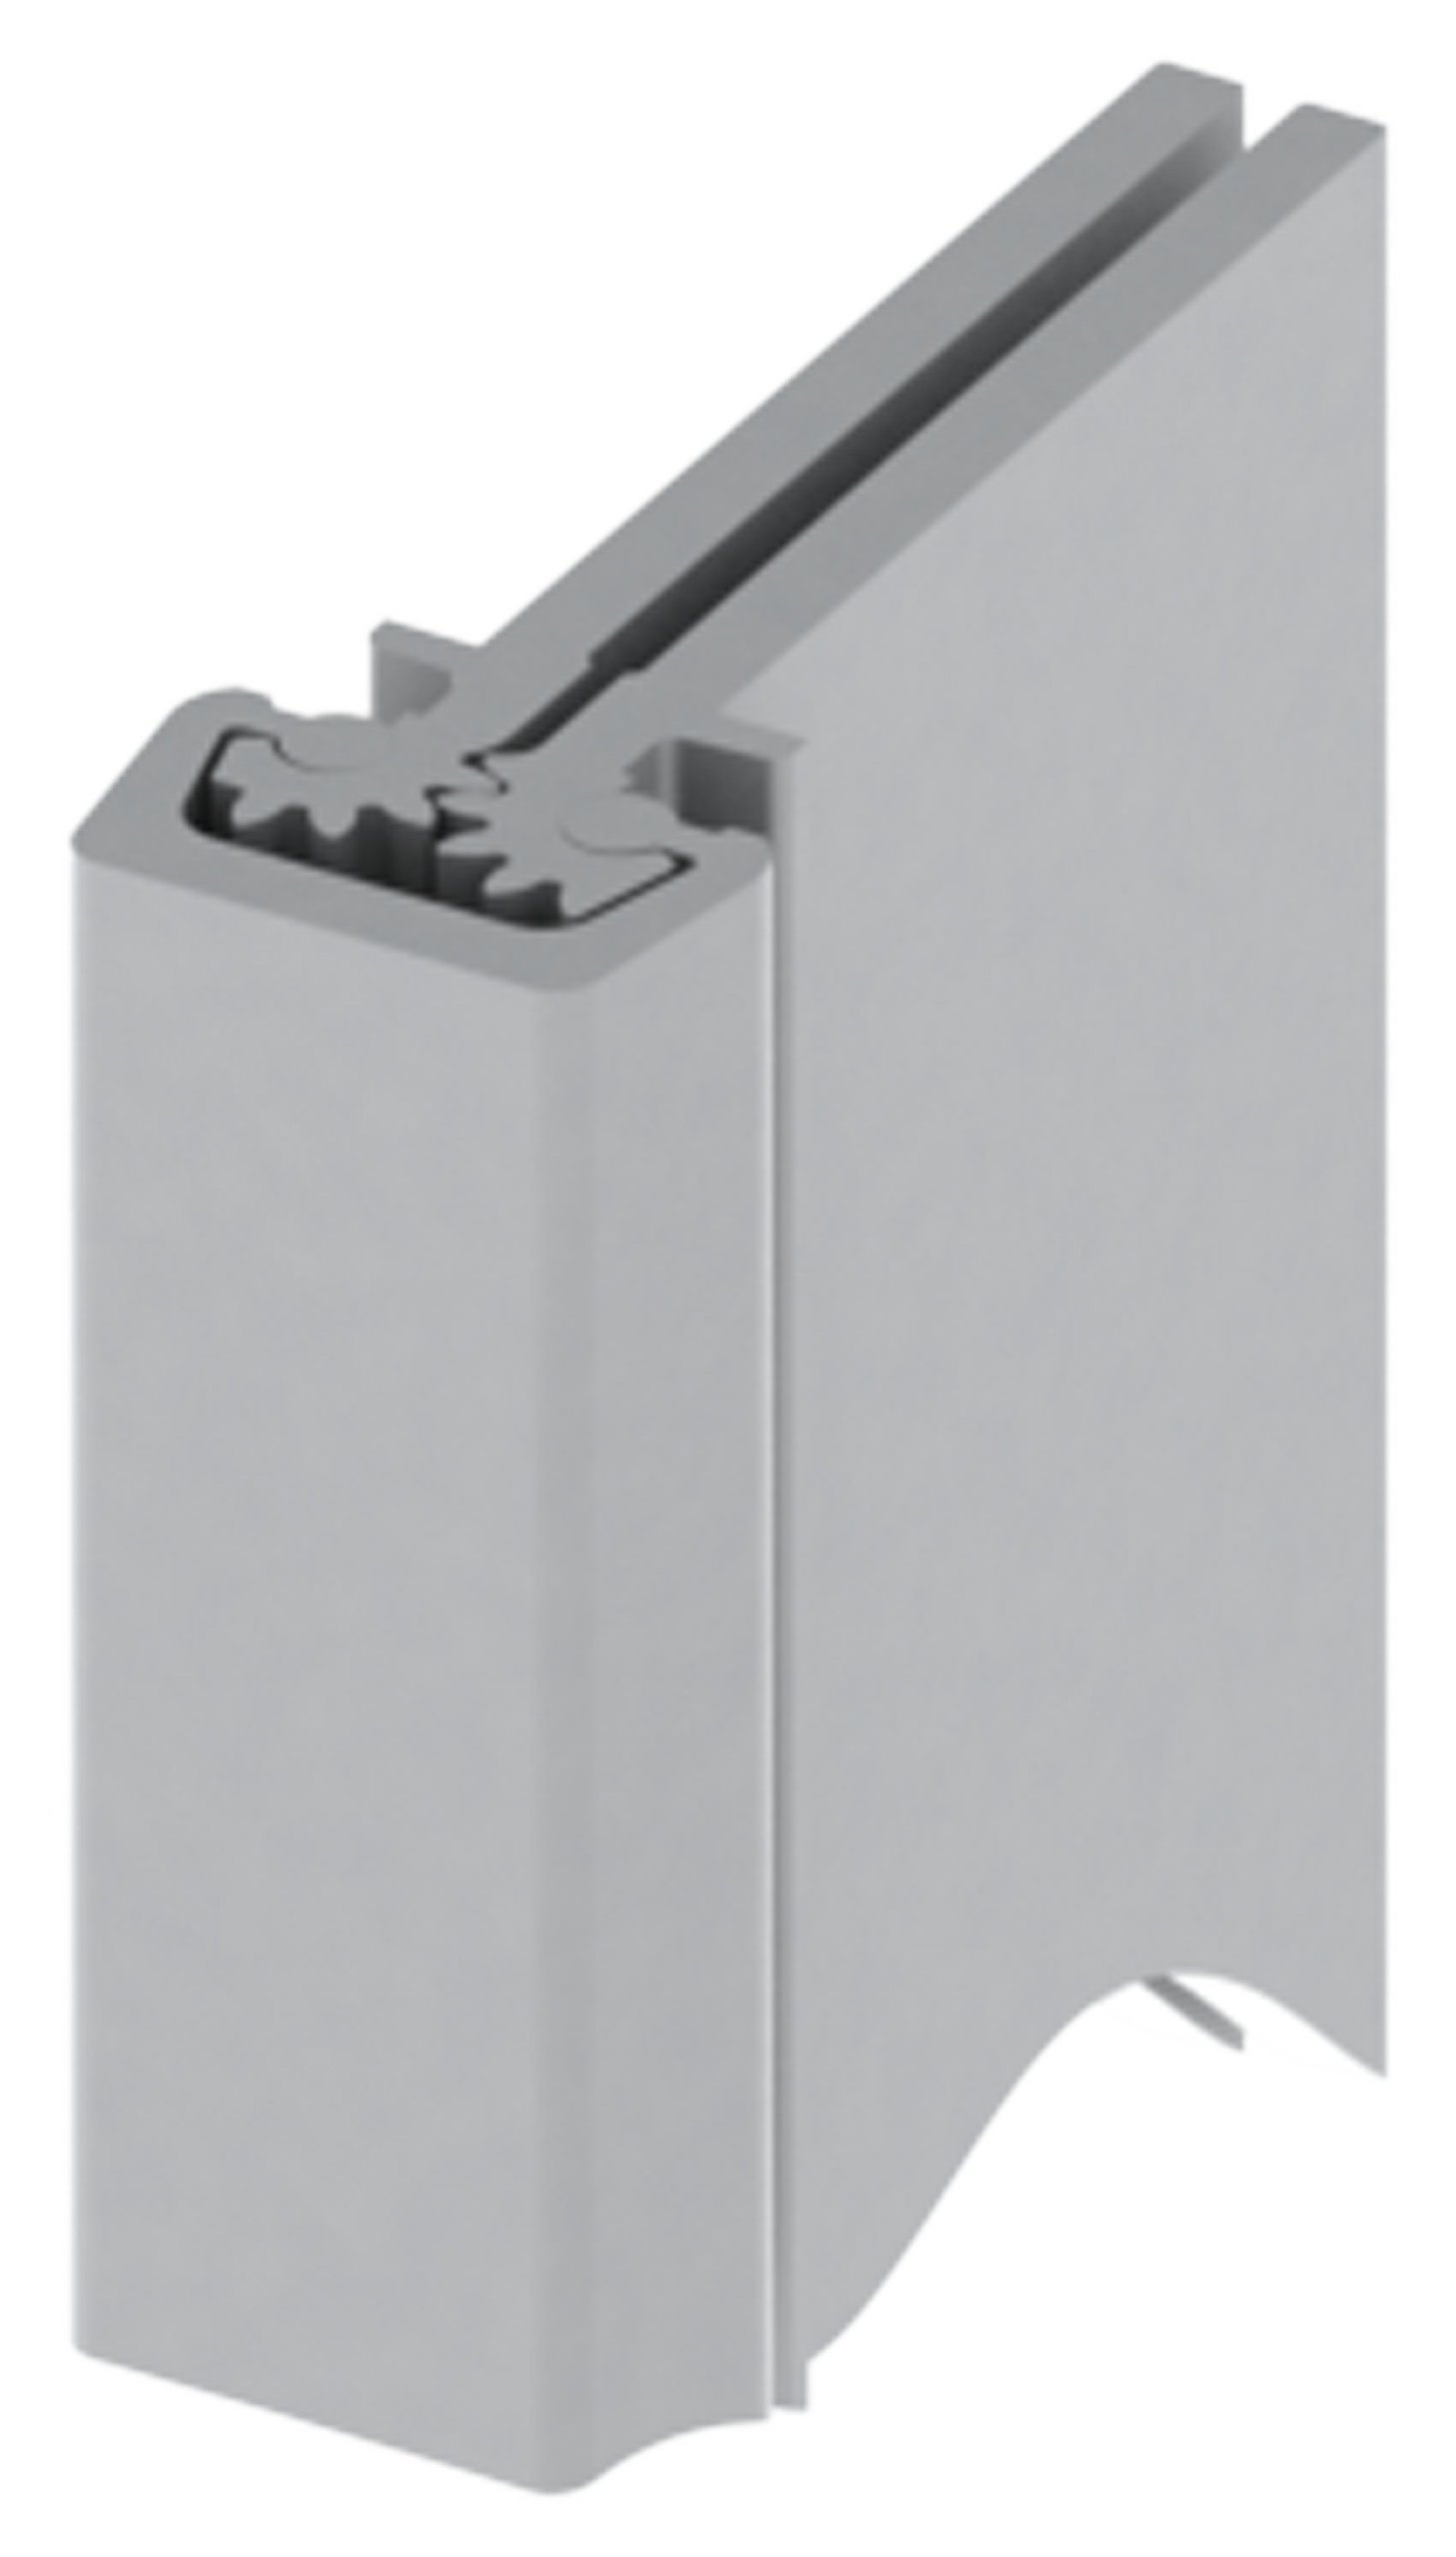 Hager 780-112 Series Aluminum Heavy Duty Fire Rated Roton Continuous Geared Hinges, Concealed Leaf, Dark Bronze Anodized, 95'' Length (Pack of 1)